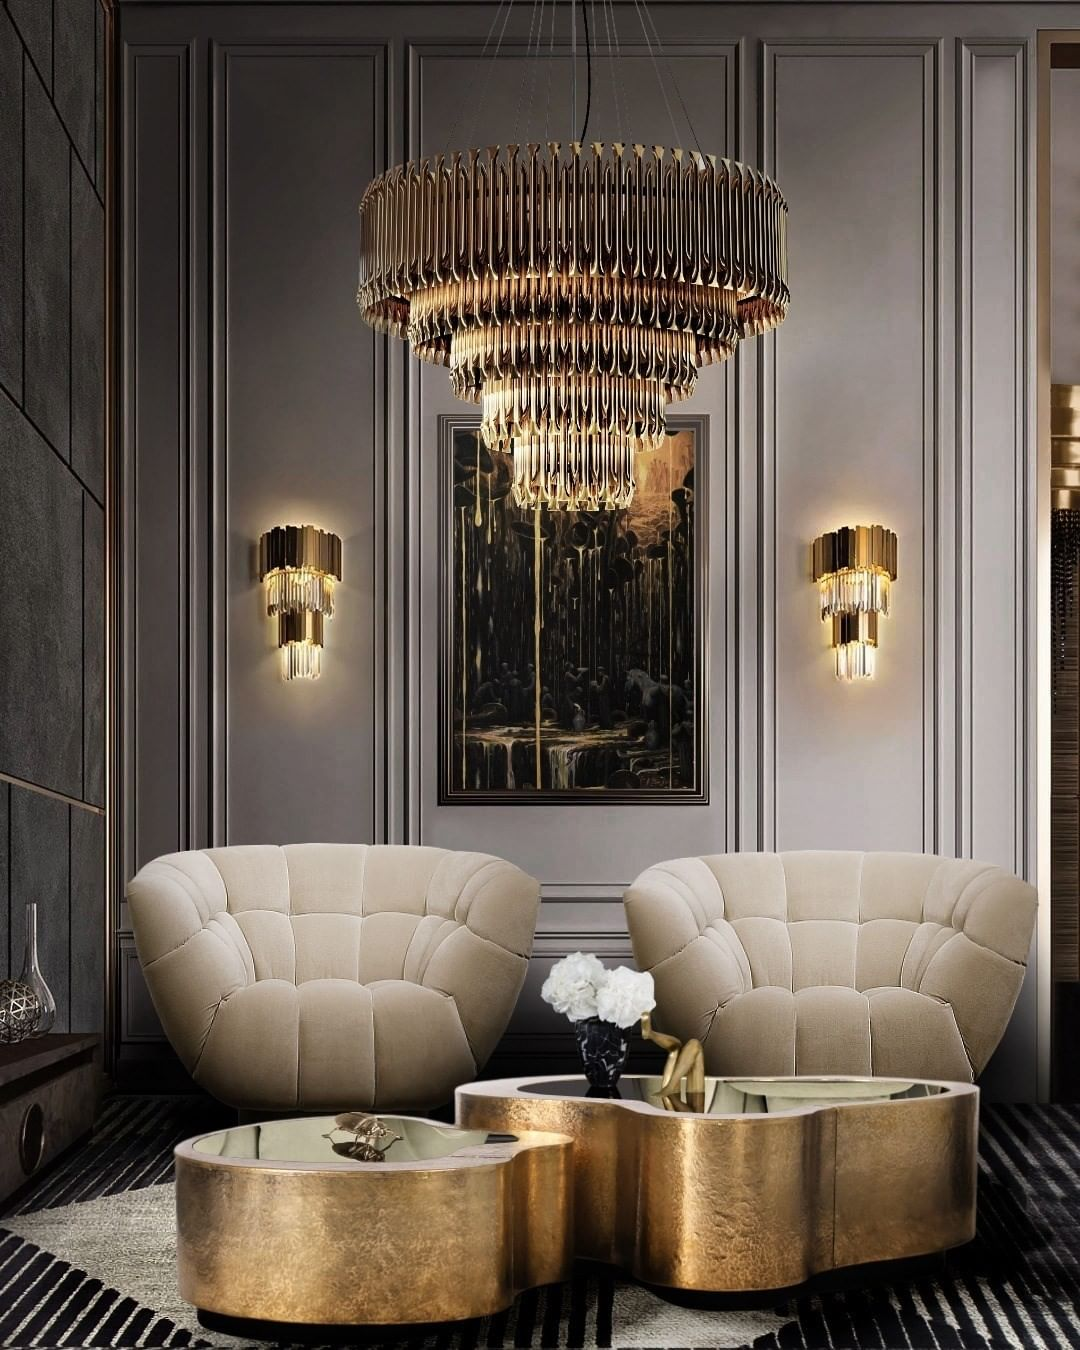 THE TRUE DEFINITION OF LUXURY WITH MATHENY CHANDELIER